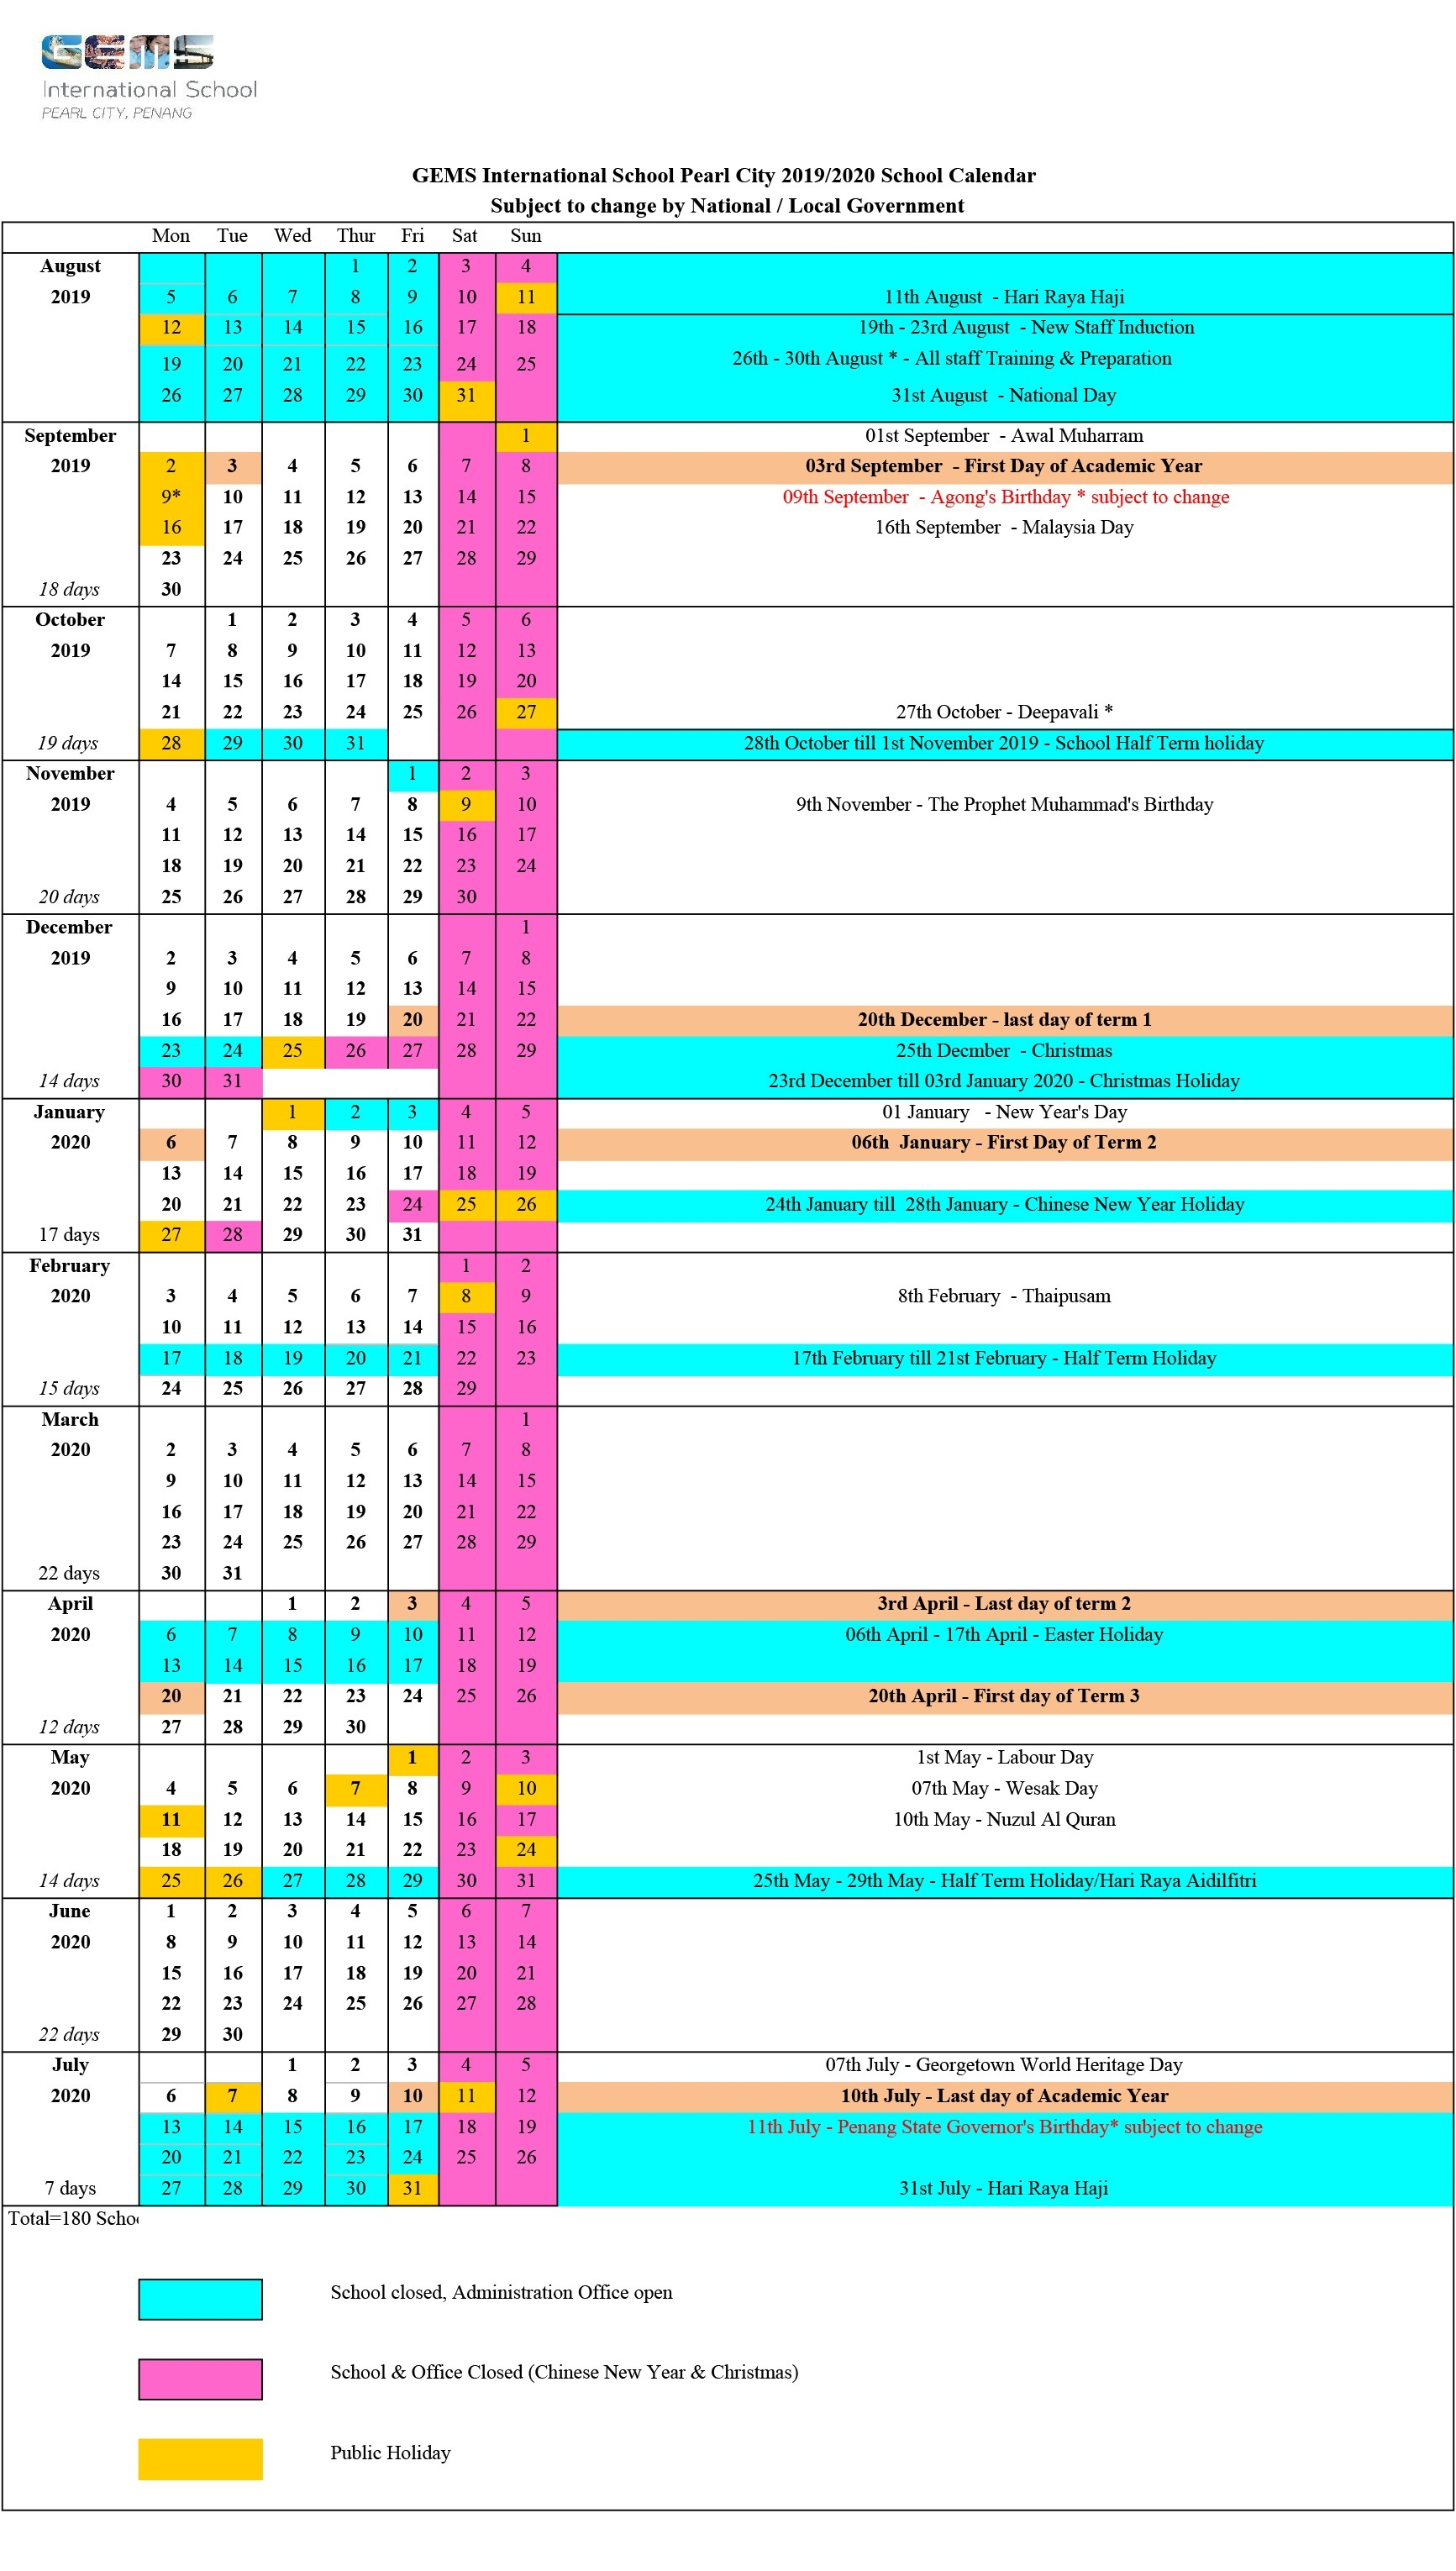 2019/2020 School Calendar - Gems International School-Malaysia School Holidays 2020